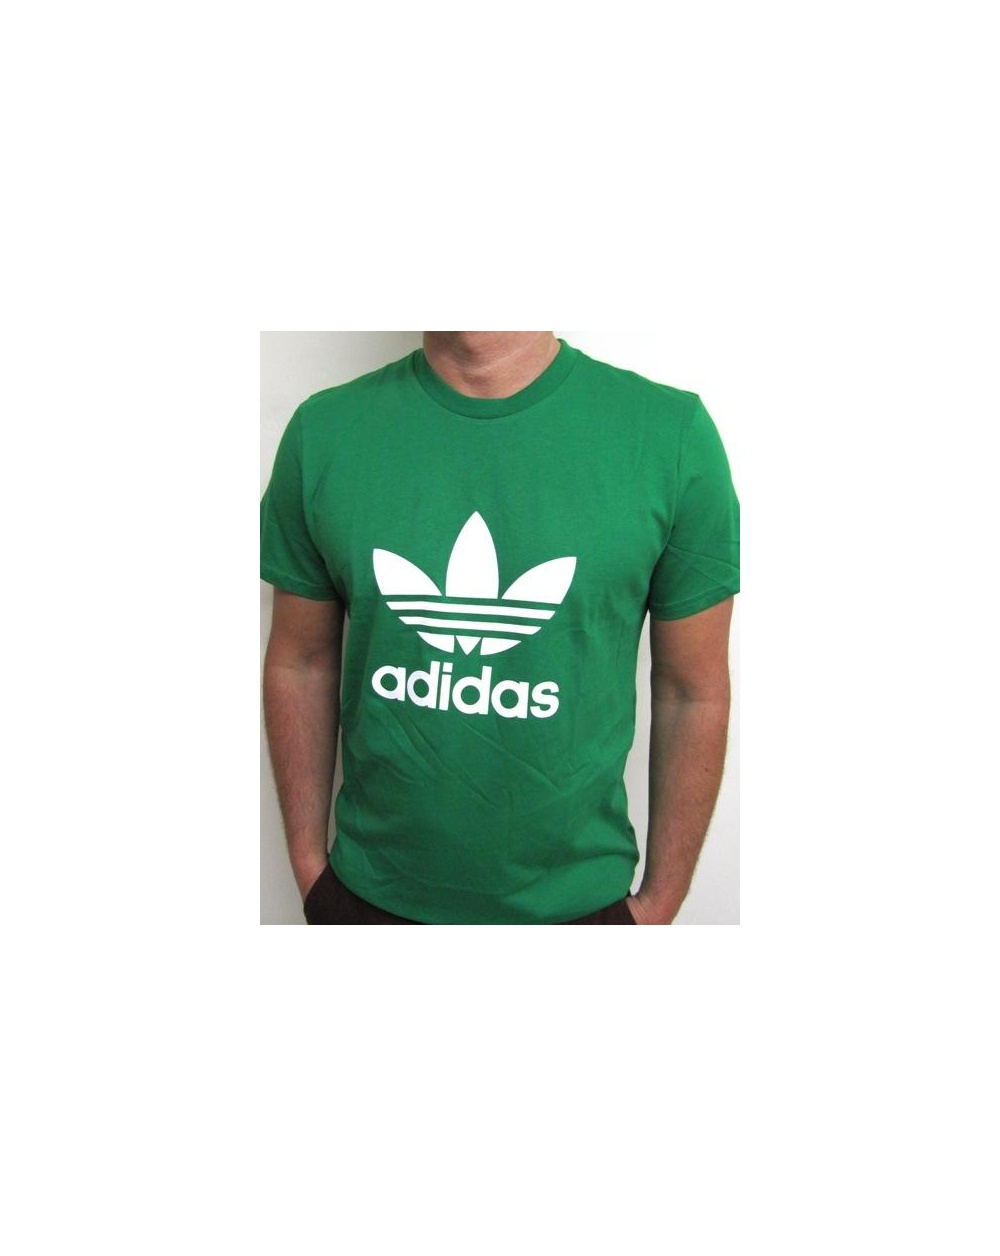 Adidas Originals Trefoil T-shirt With Large Logo Green - 0 2ea8a64f5